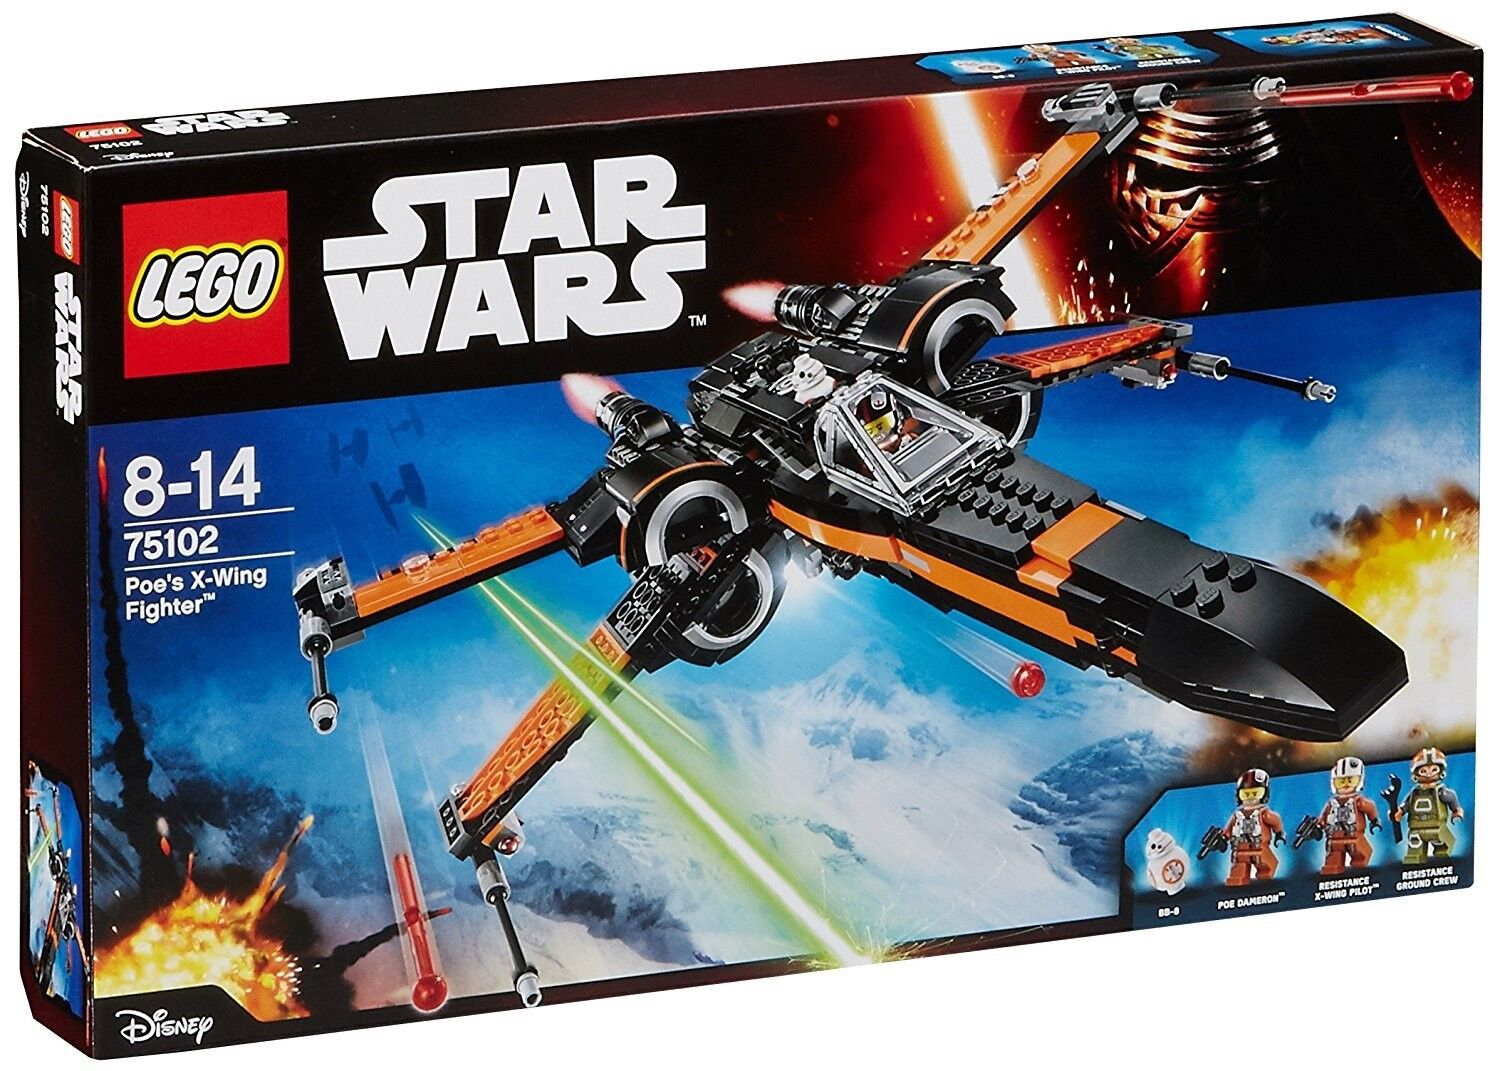 Lego Set 75102 - Star Wars Poe's X-Wing Fighter - RETIrot, BRAND NEW